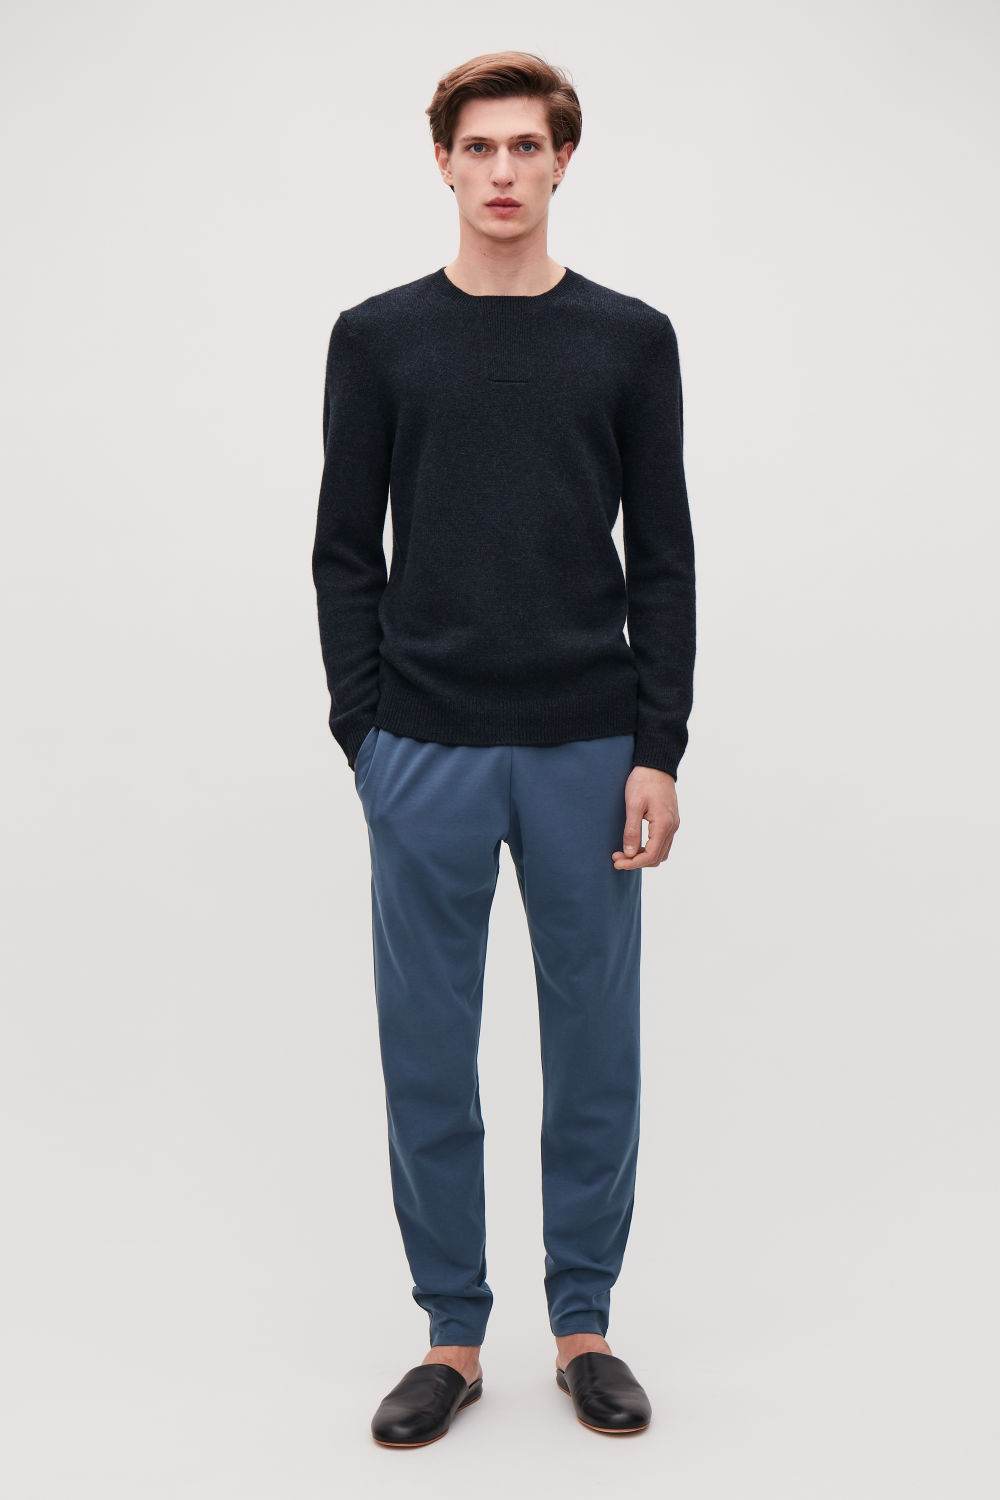 STITCH-DETAILED CASHMERE JUMPER